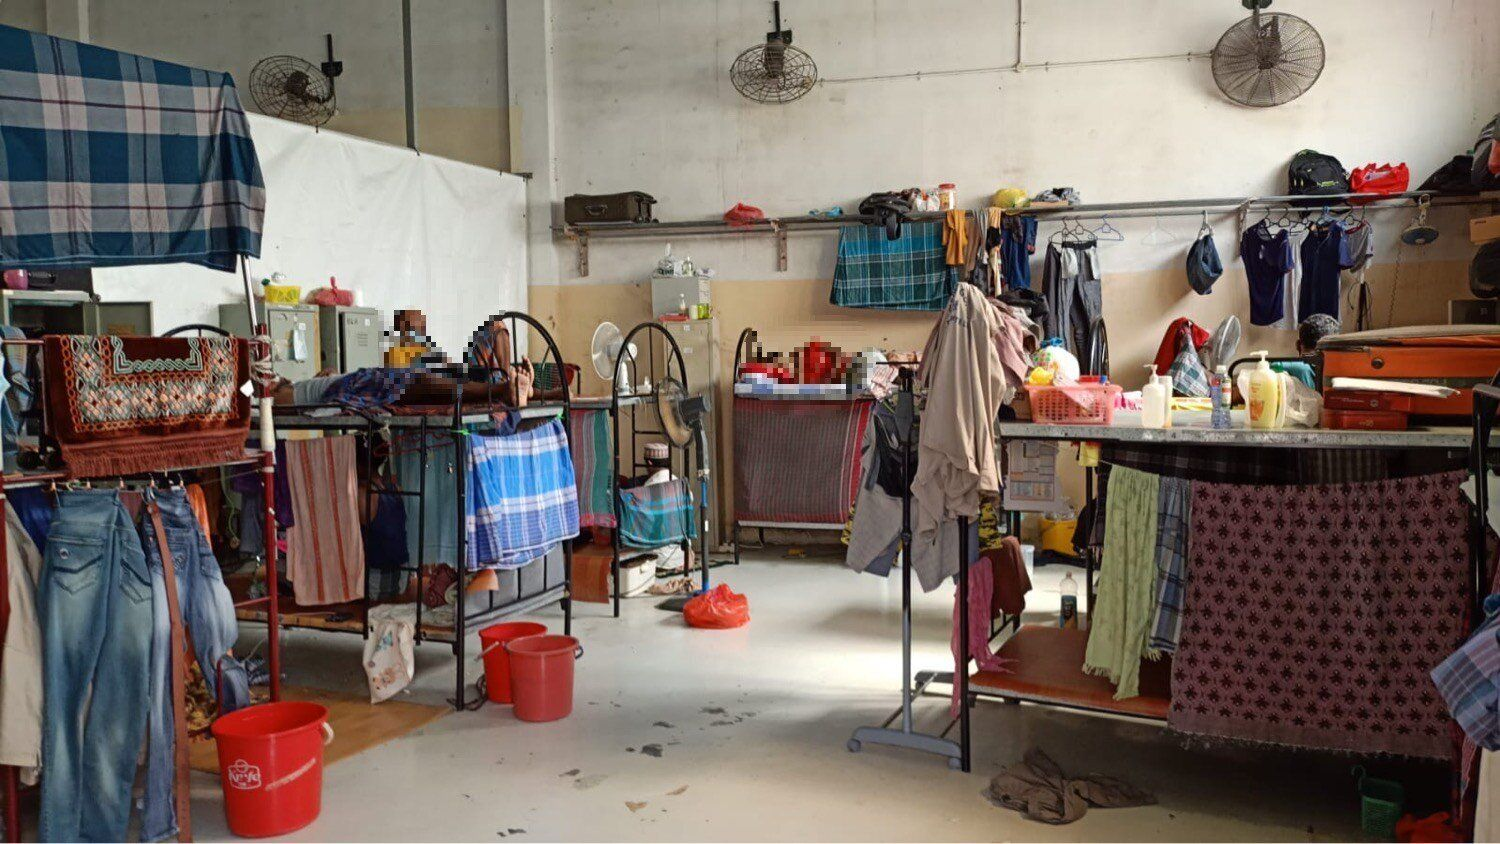 Seventeen men have been confined in this room at Kian Teck Crescent dormitory for 20 days. The men's images have been digital